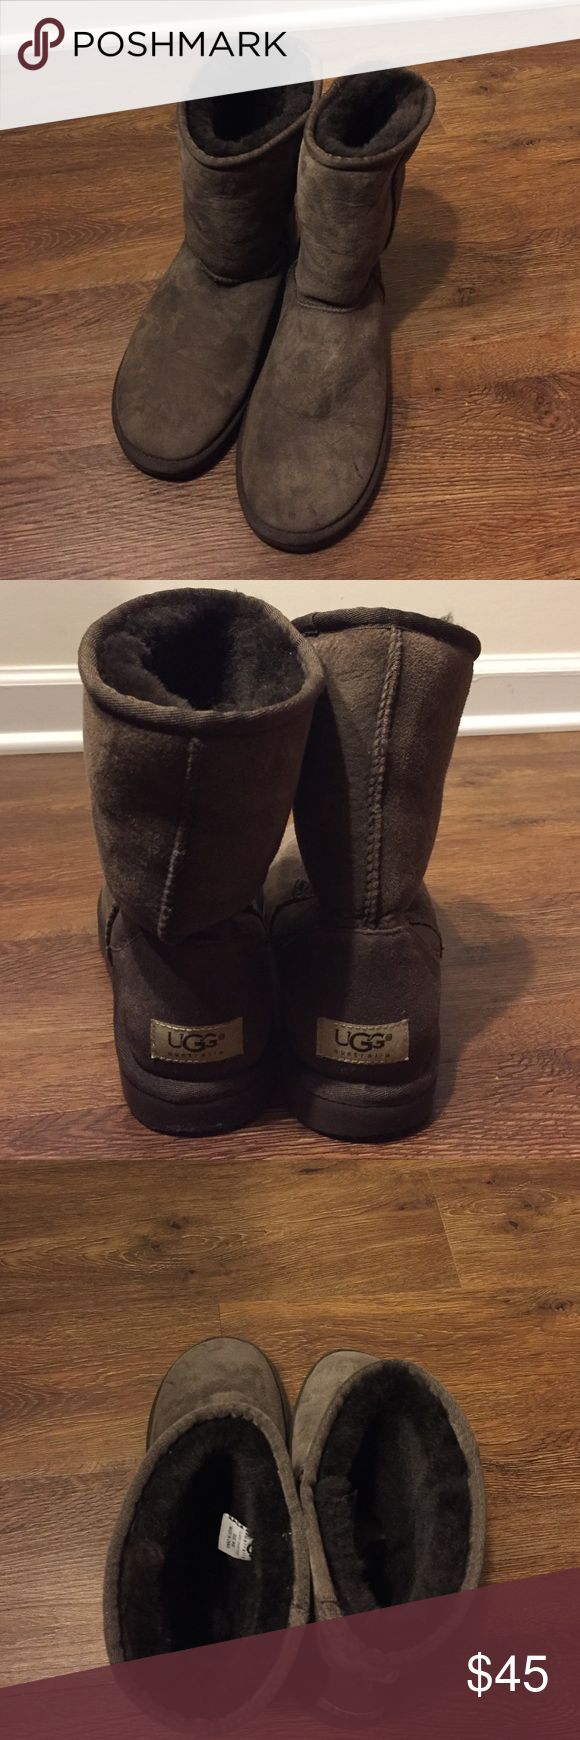 UGG classic short boots Classics short brown UGGs- rarely worn! UGG Shoes Winter & Rain Boots